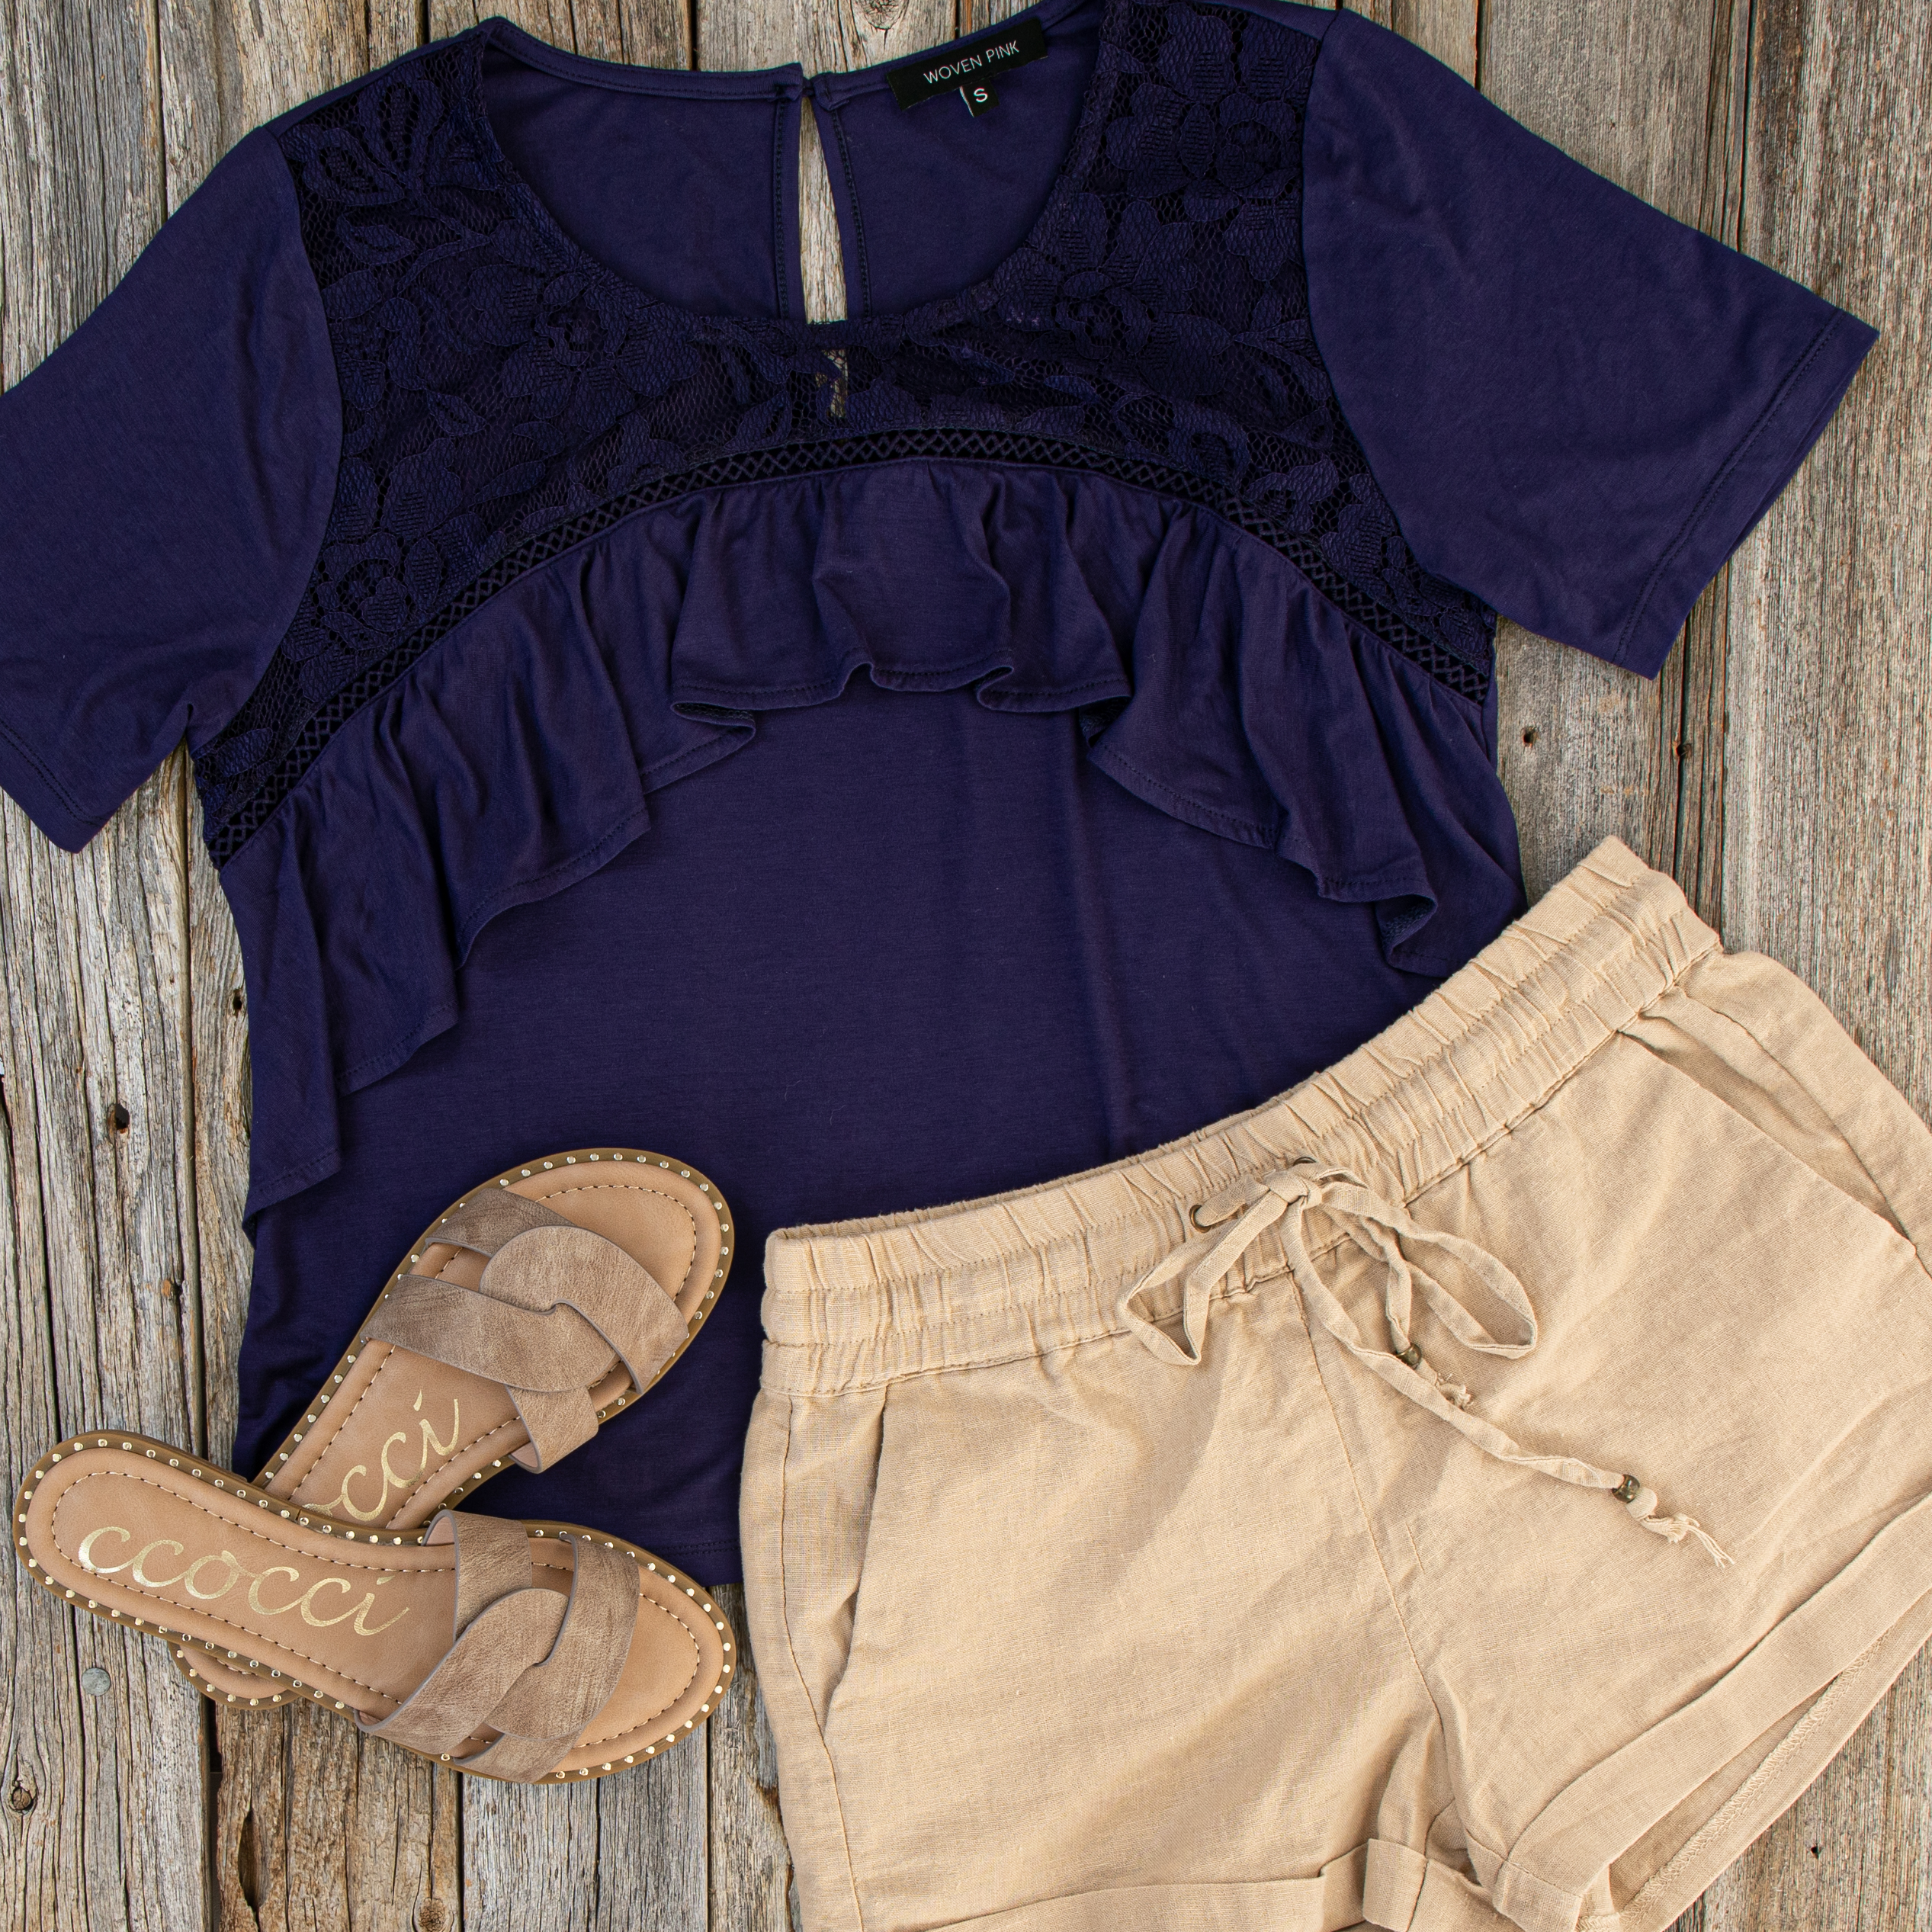 Navy Blue Short Sleeve Top with Lace and Ruffle Details